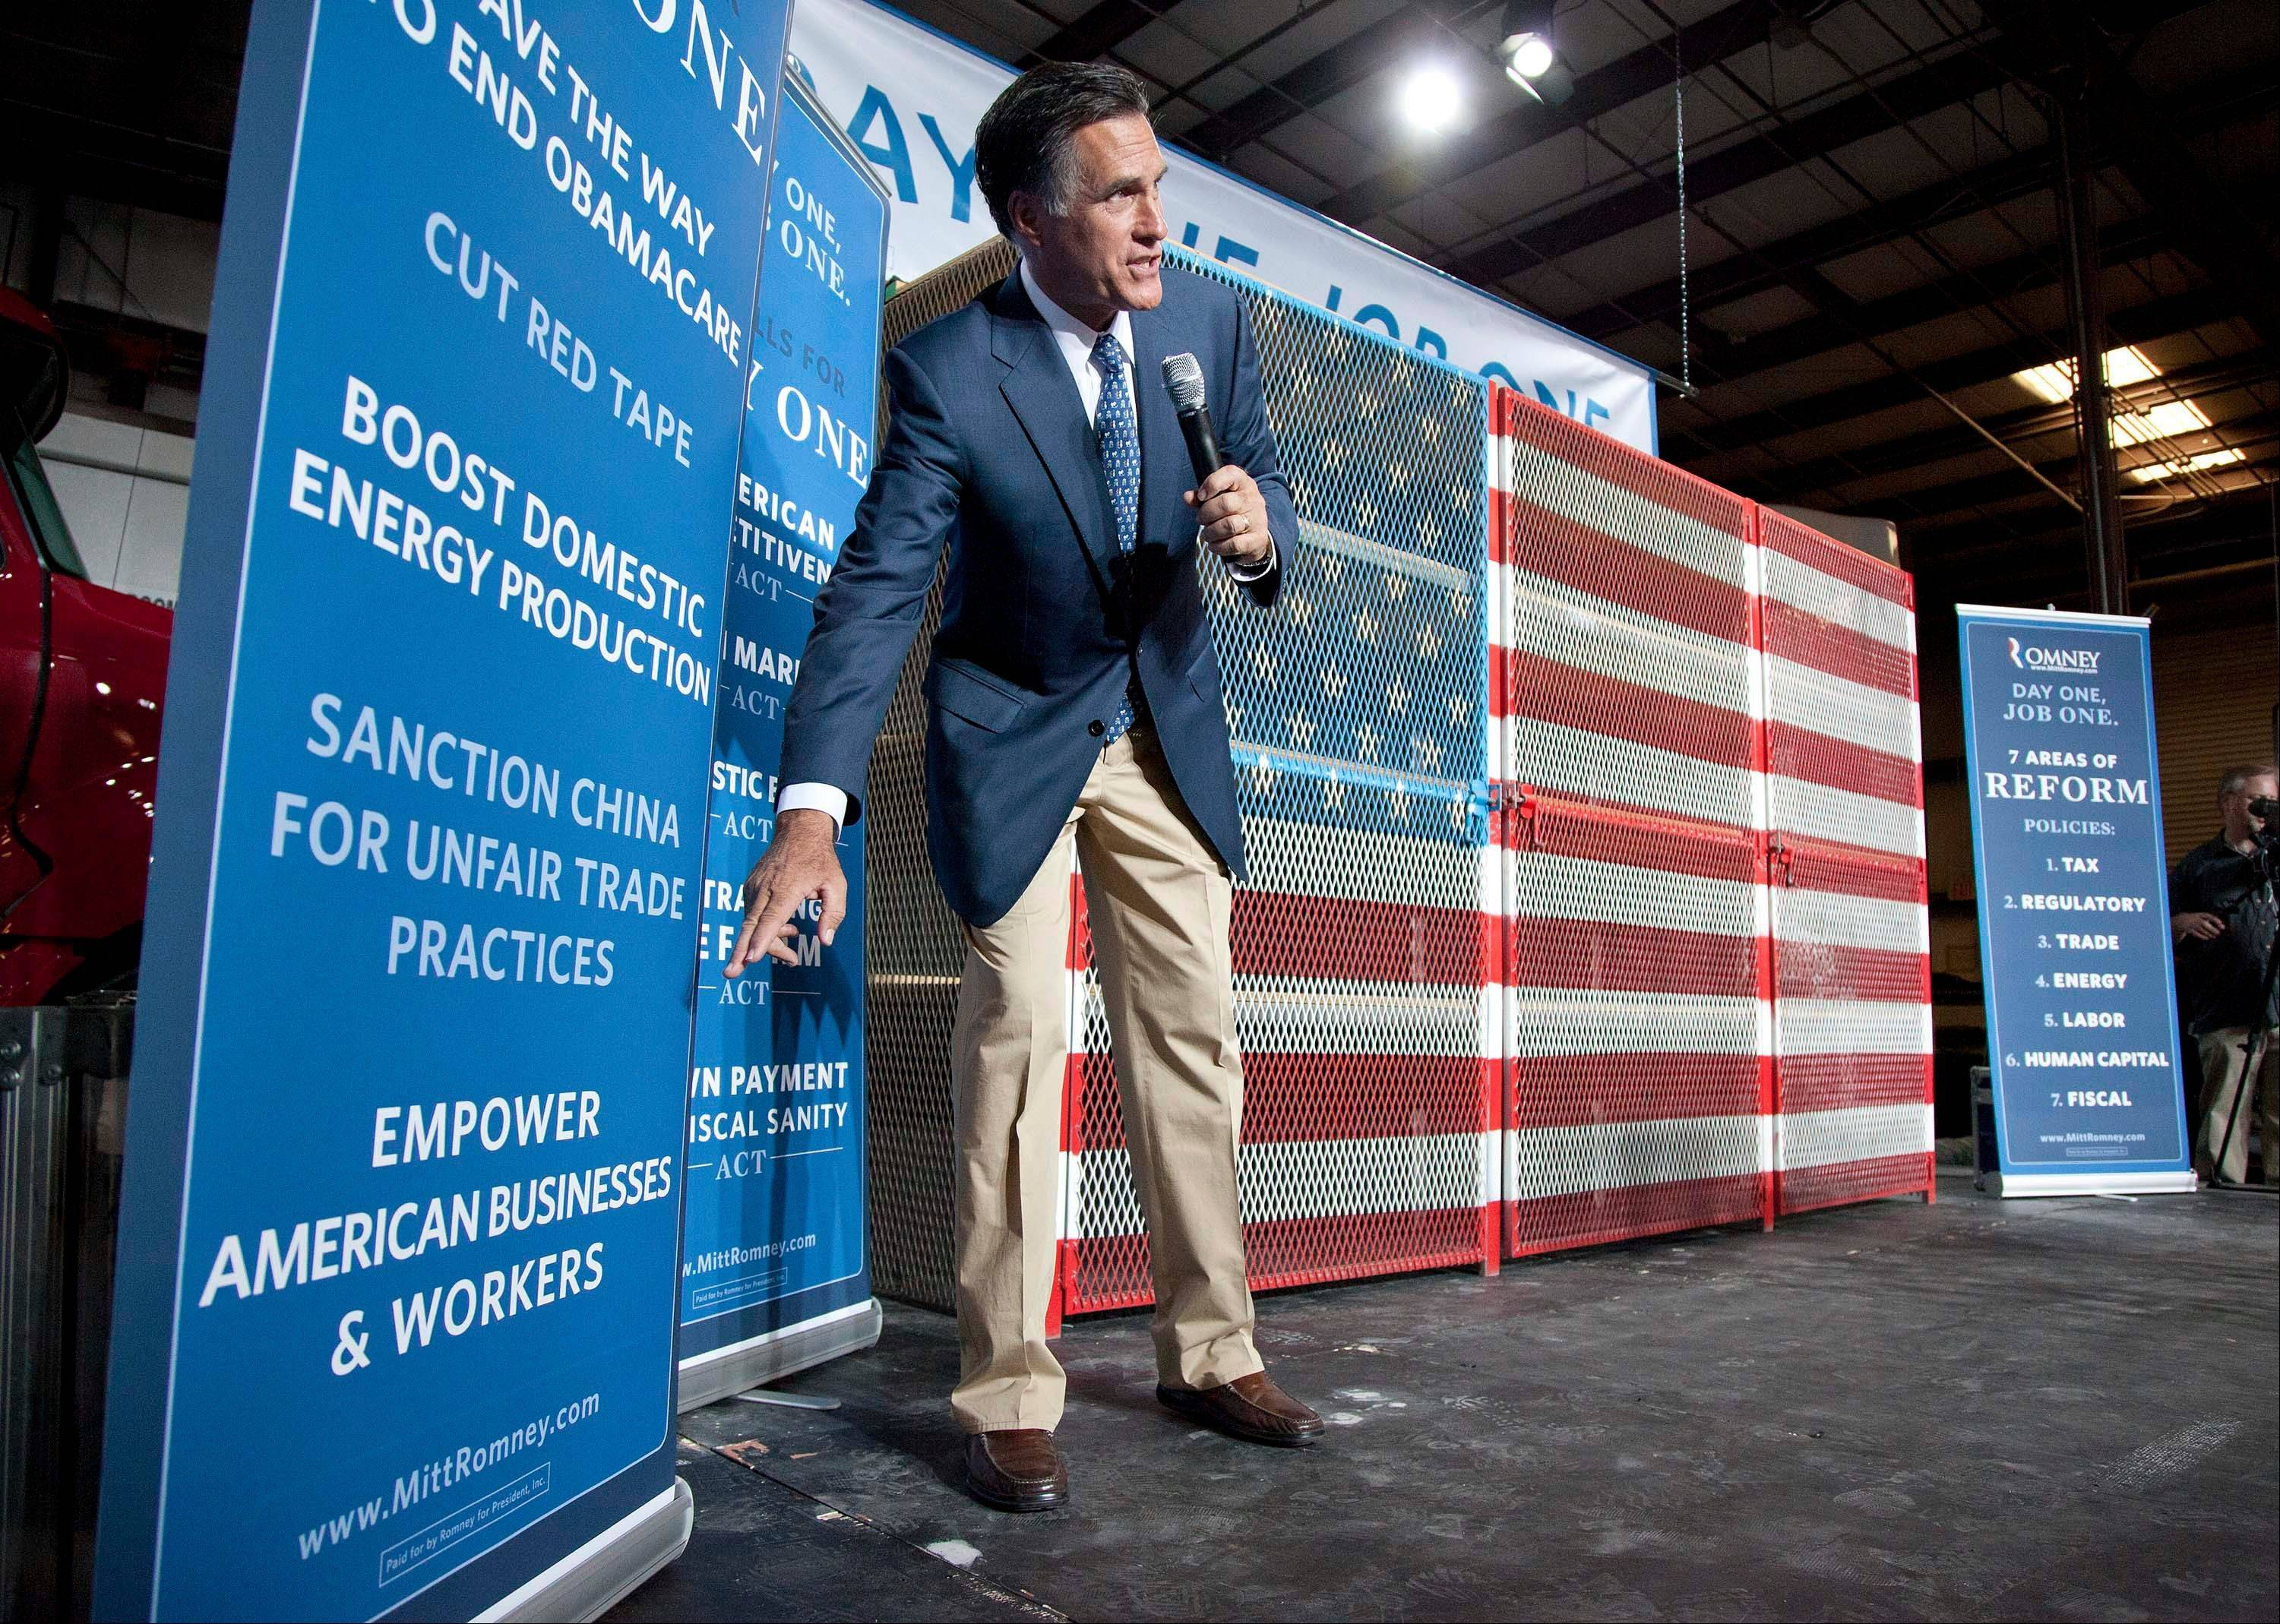 Republican presidential candidate Gov. Mitt Romney talks about his plan for creating jobs and improving the economy at a campaign stop in Las Vegas last week.